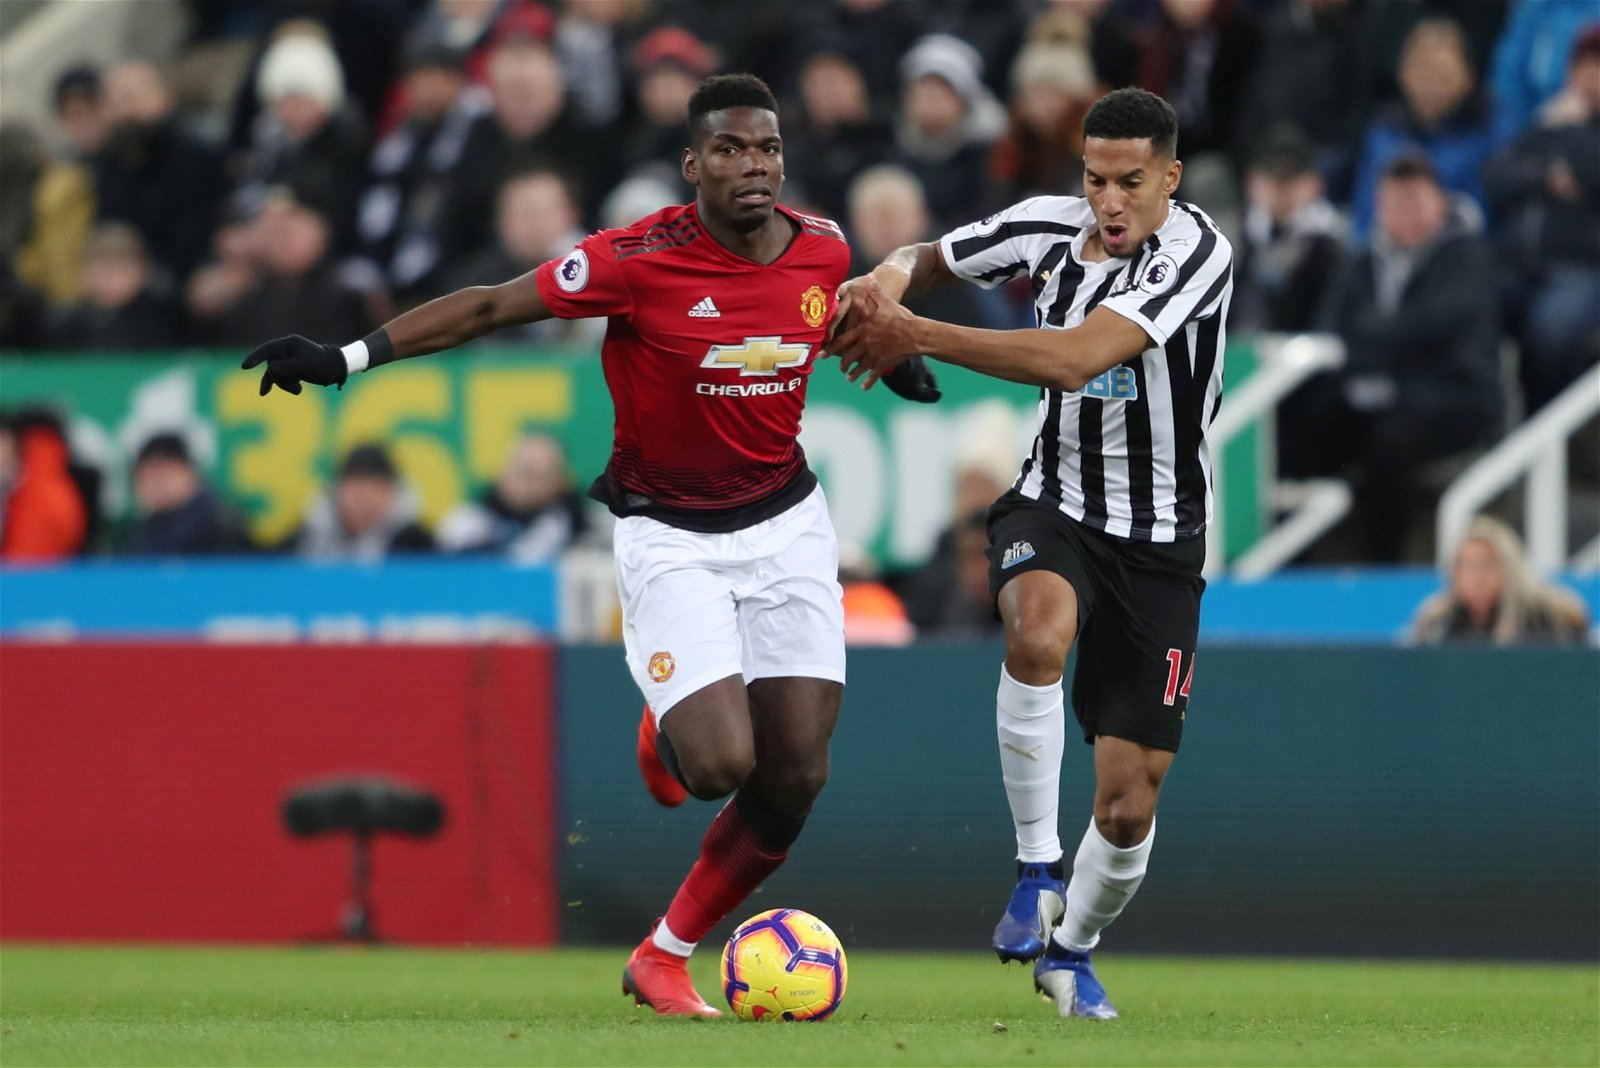 Manchester United's Paul Pogba in action with Newcastle United's Isaac Hayden